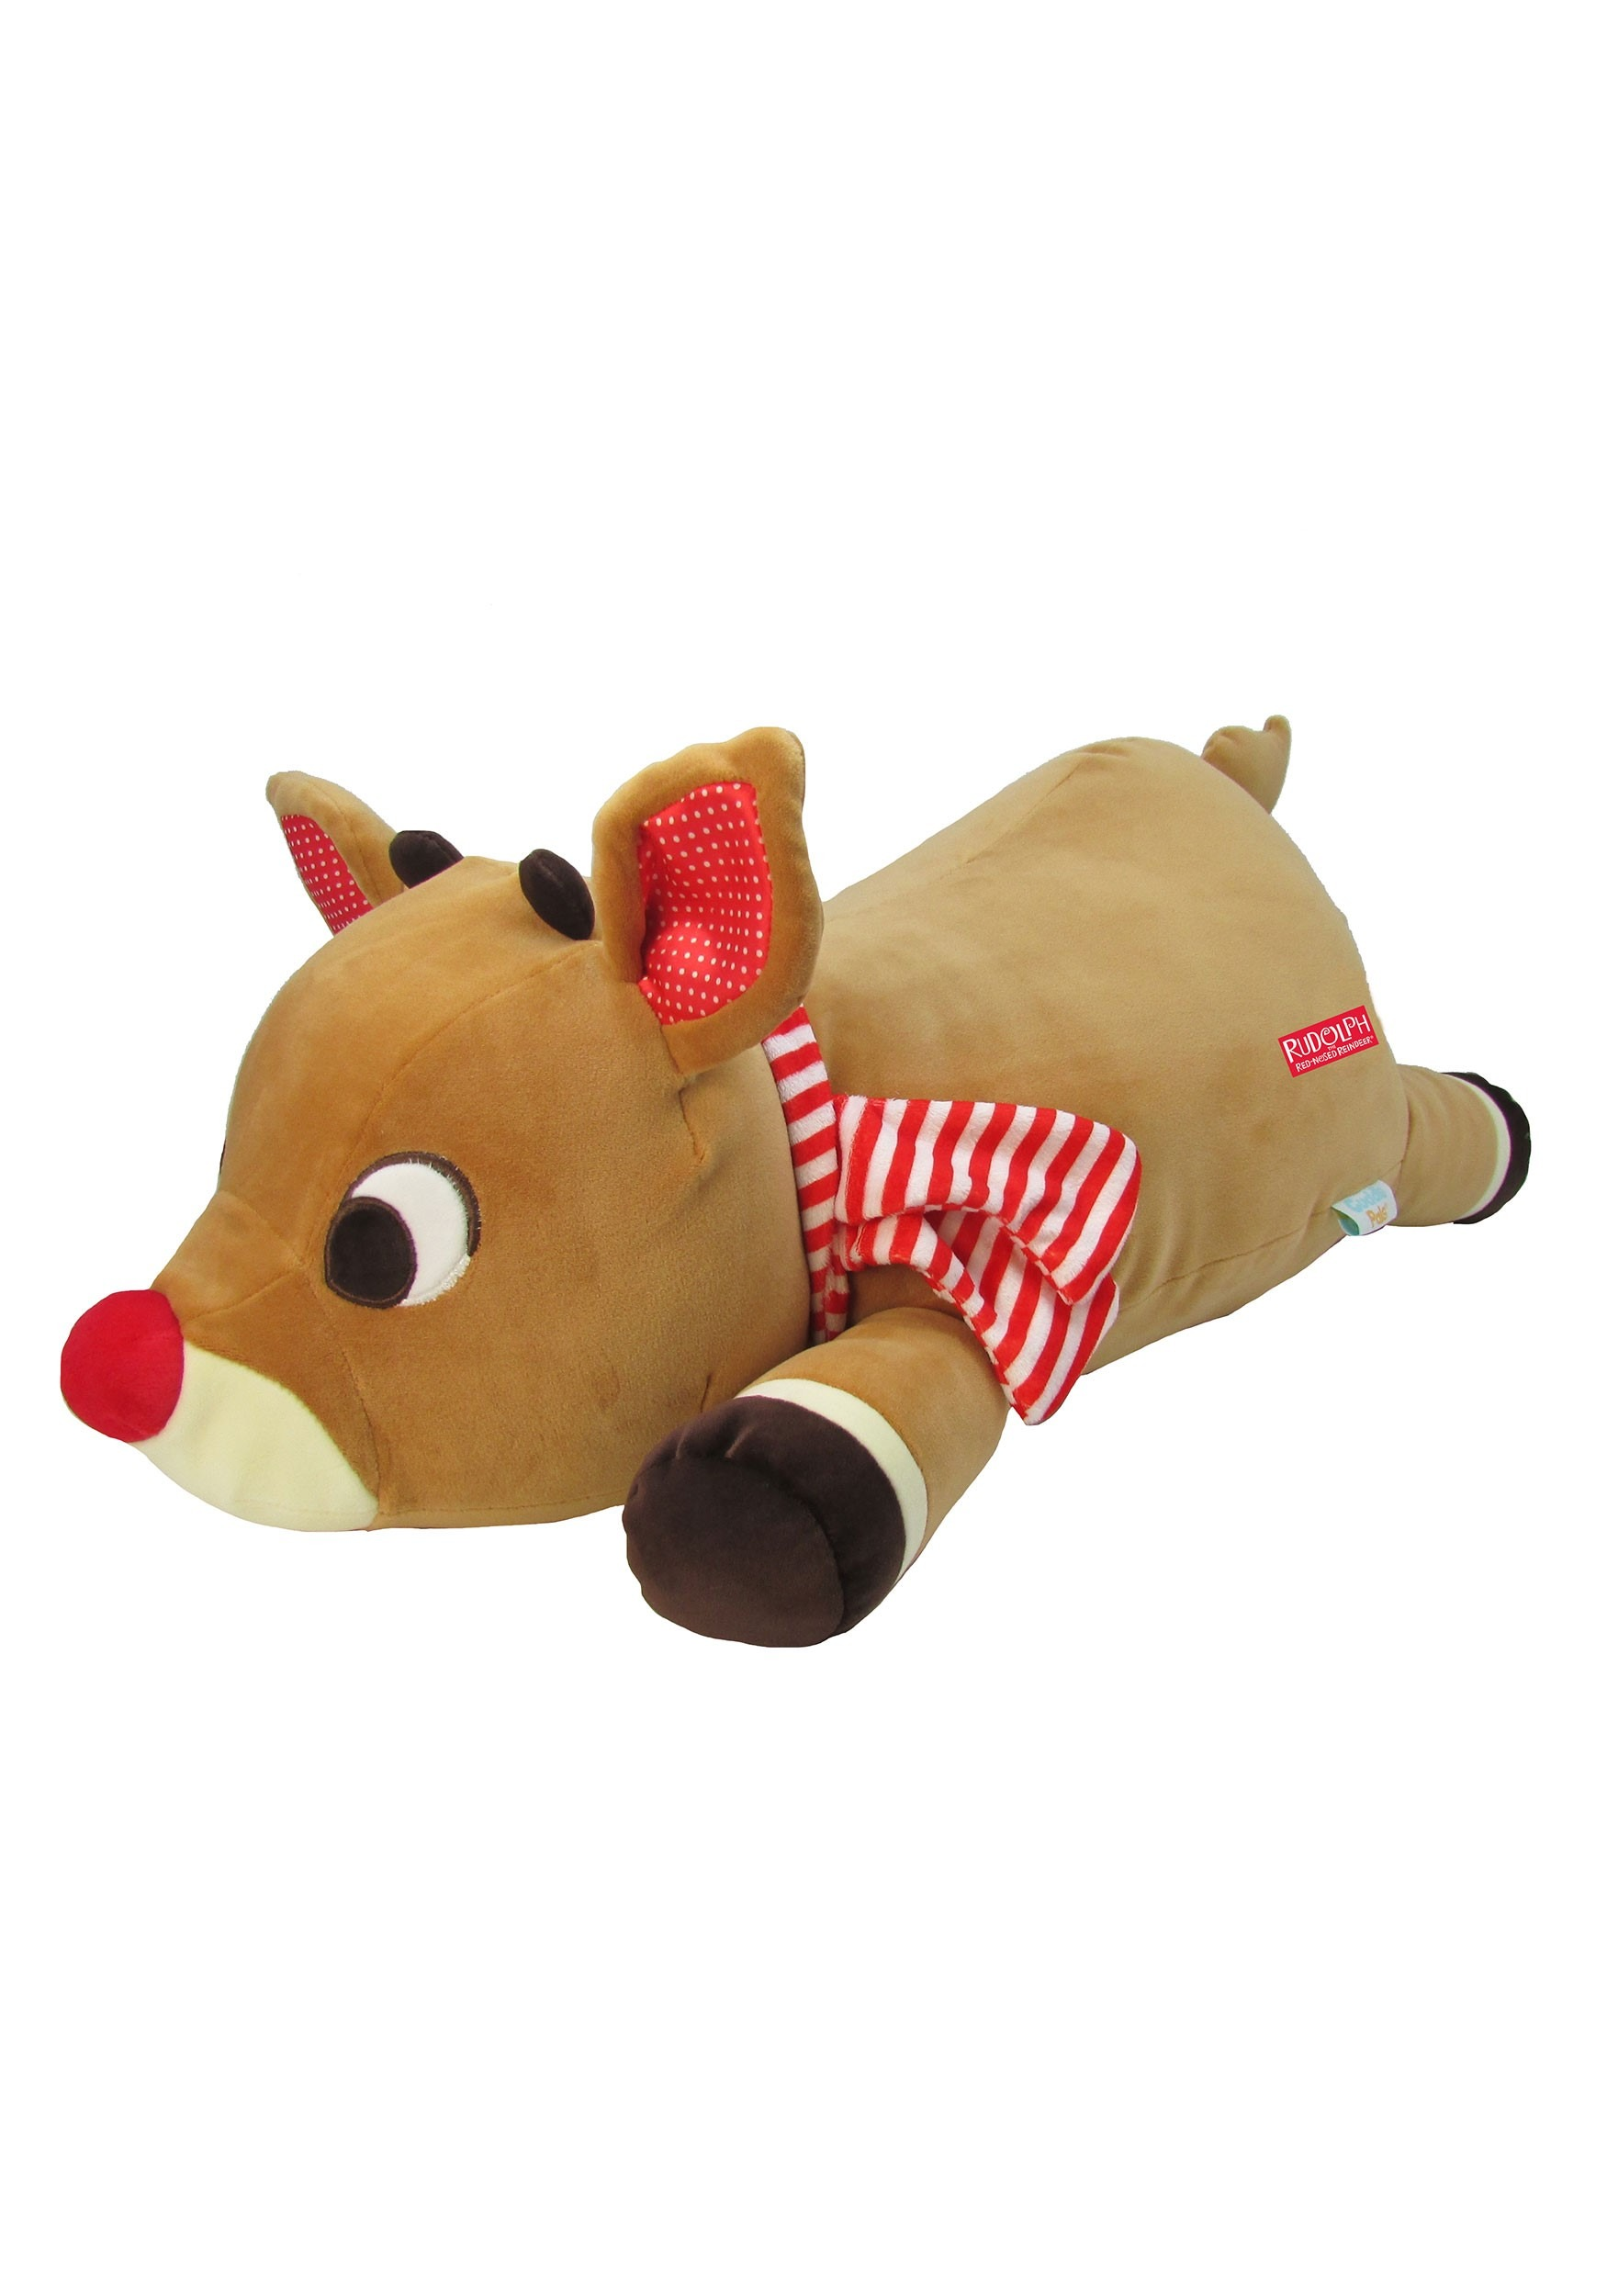 Cuddle Pal Rudolph the Red Nosed Reindeer Stuffed Figure